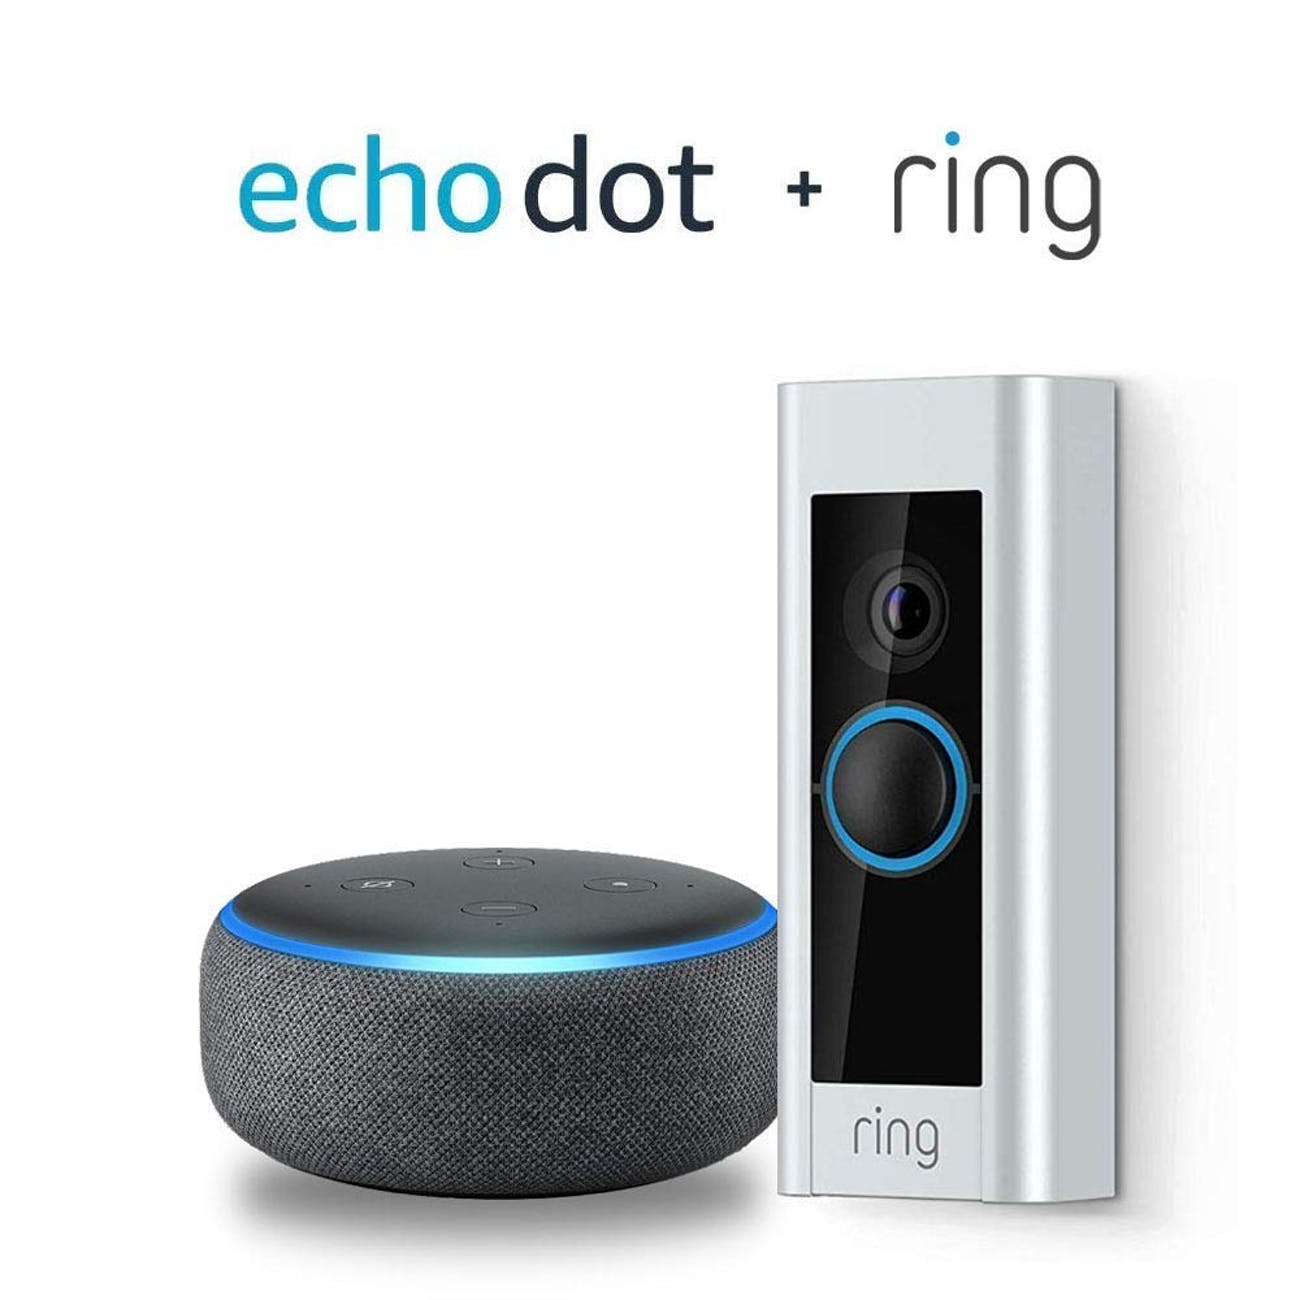 Ring Video Doorbell Pro with Echo Dot (3rd Gen) - Charcoal